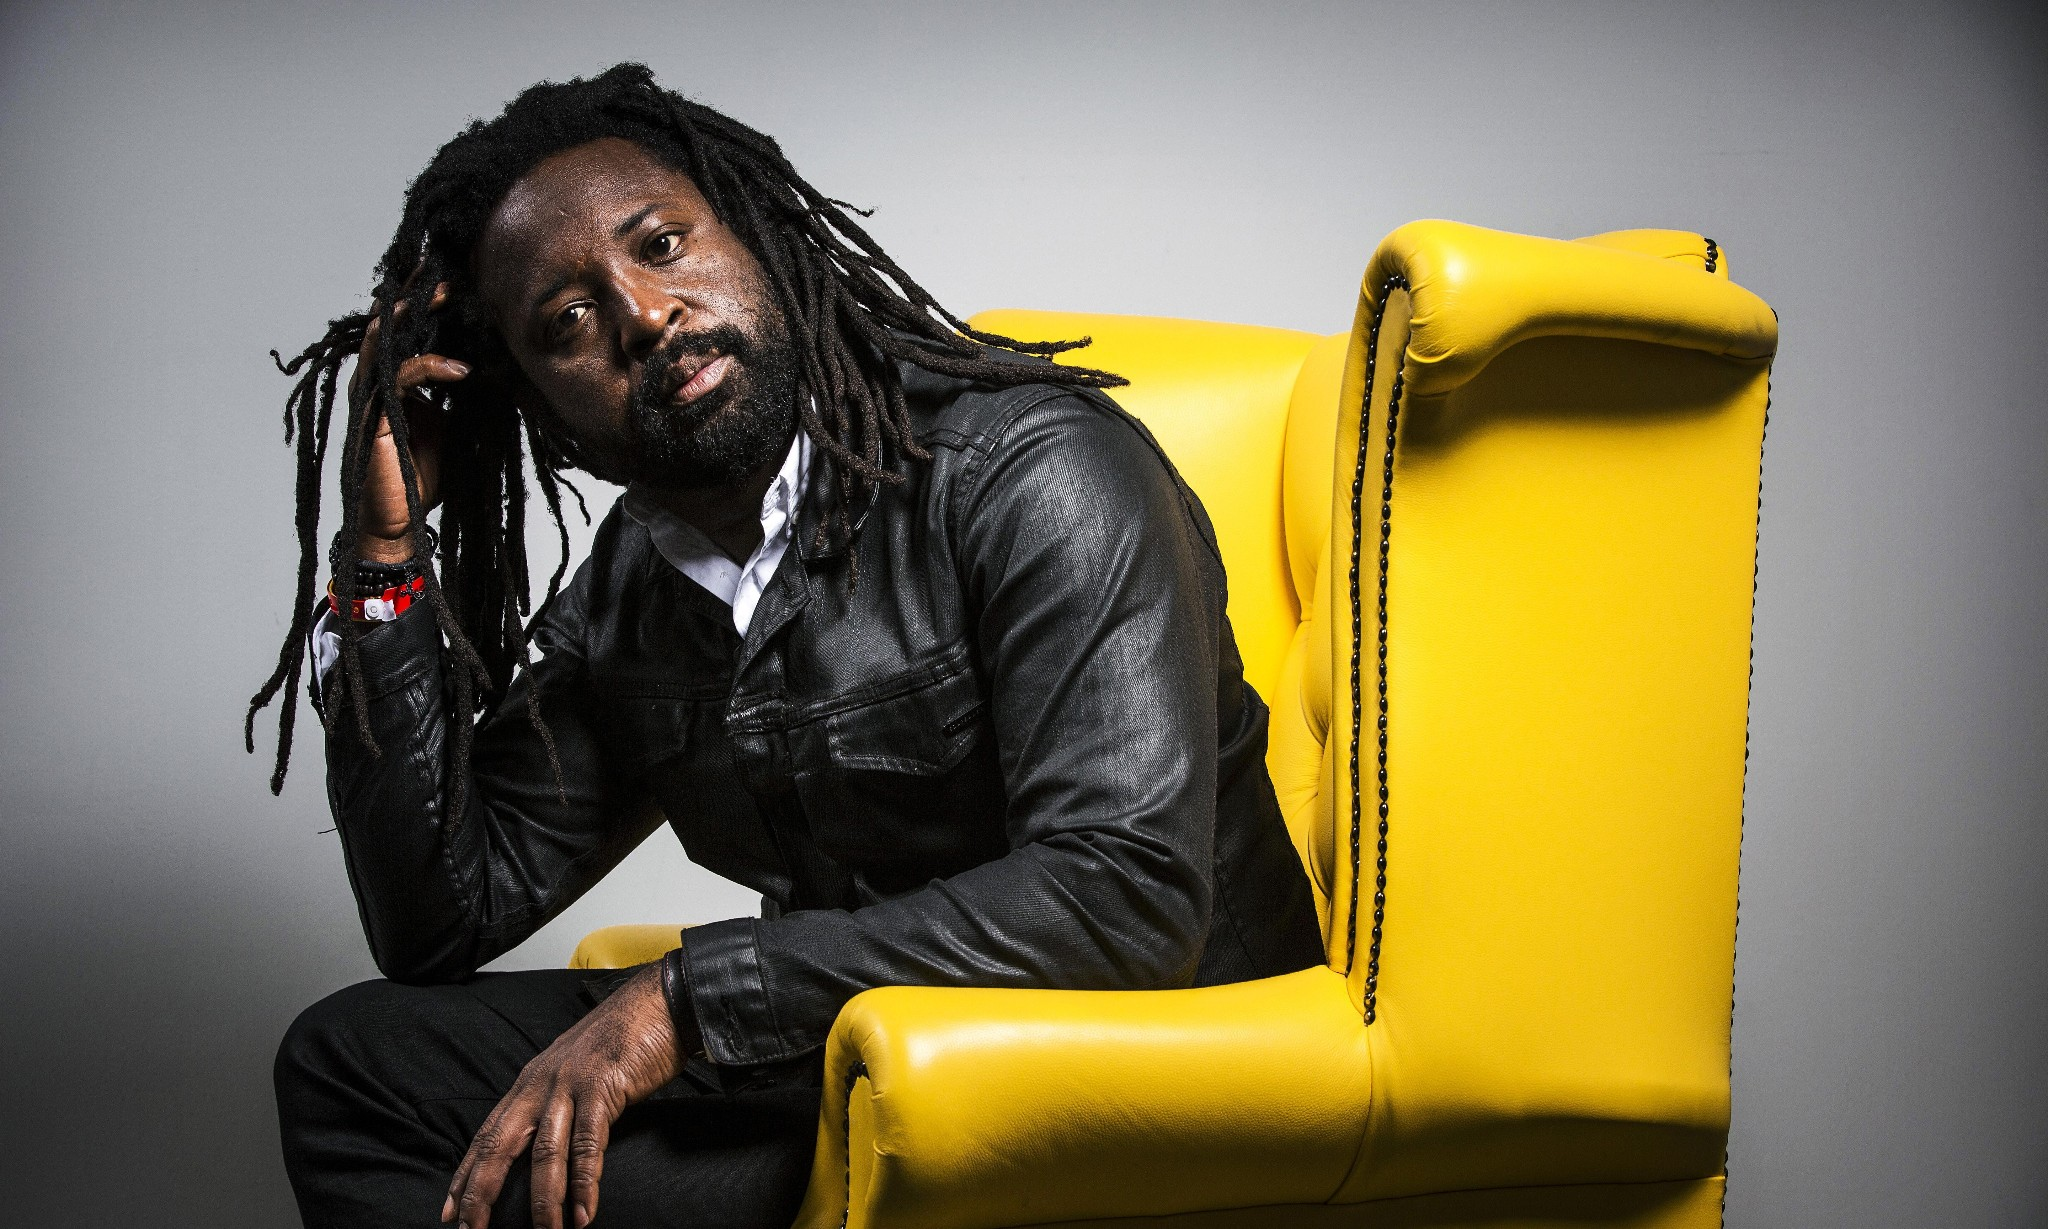 Man-booker winner Marlon James: 'Writers of colour pander to the white woman'